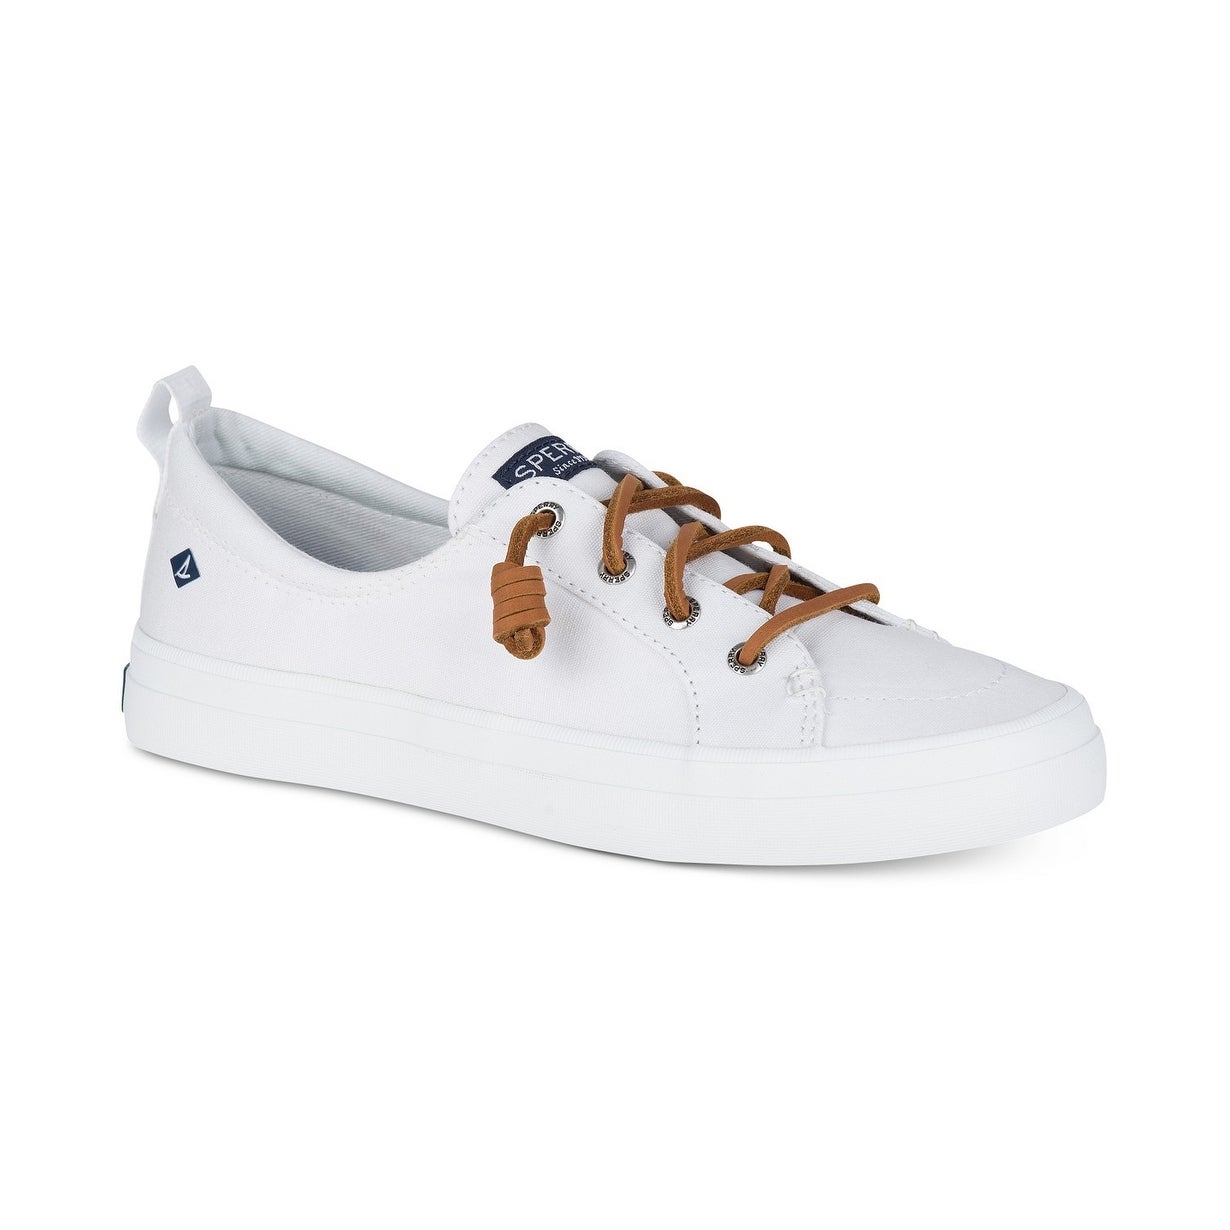 Sperry Womens Crest Vibe Canvas Low